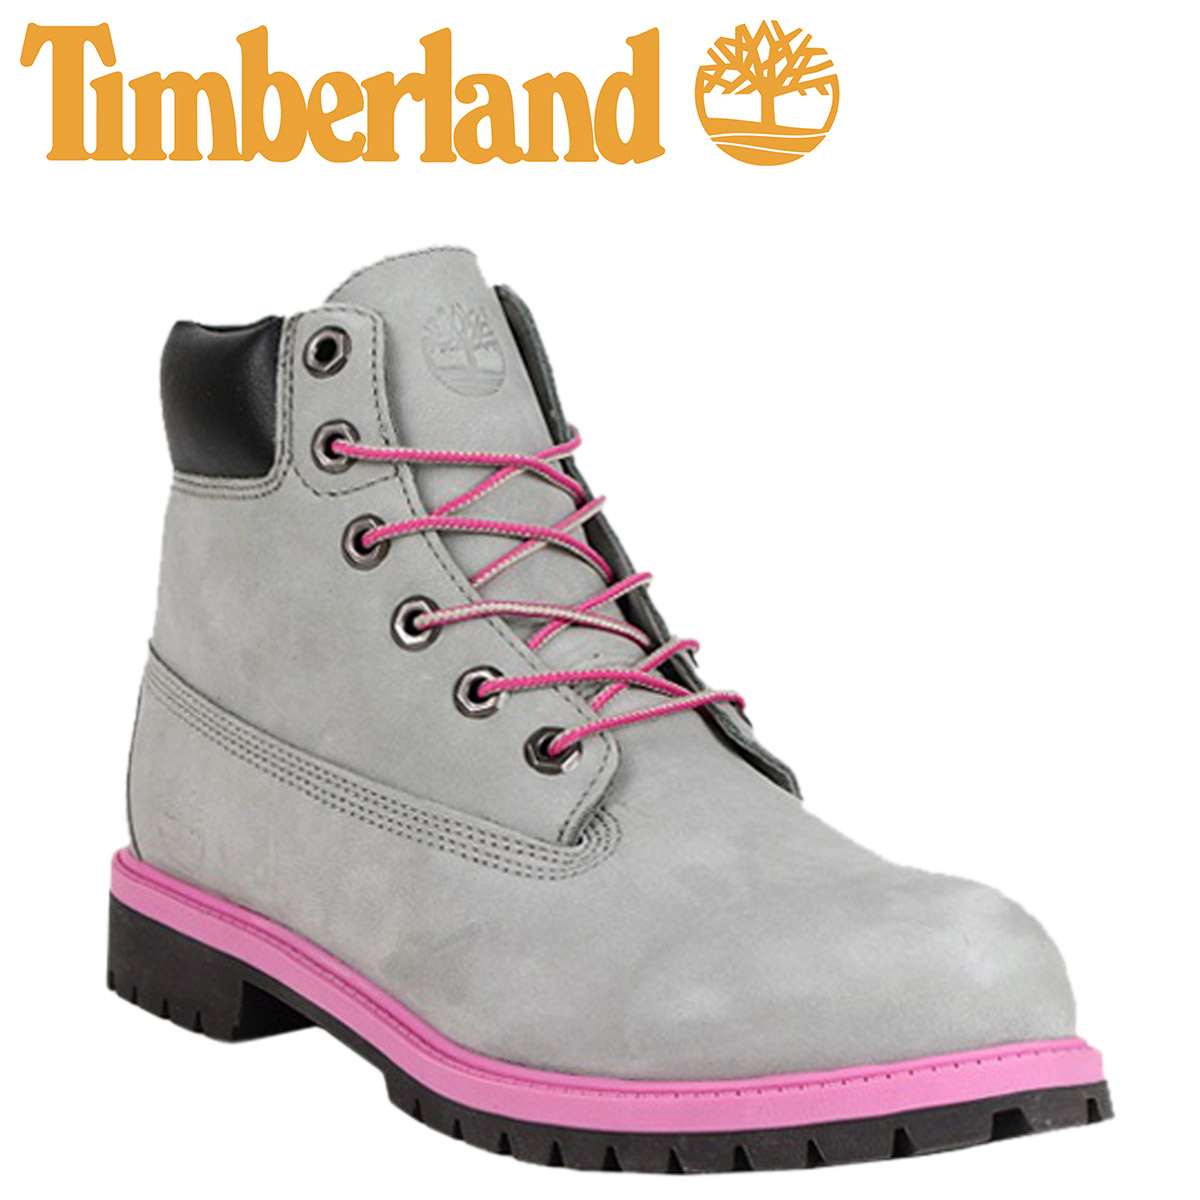 Timberland Timberland 6 inch premium boots 3194R 6INCH PREMIUM BOOT junior  kids child ladies GREY a6087e22cb80